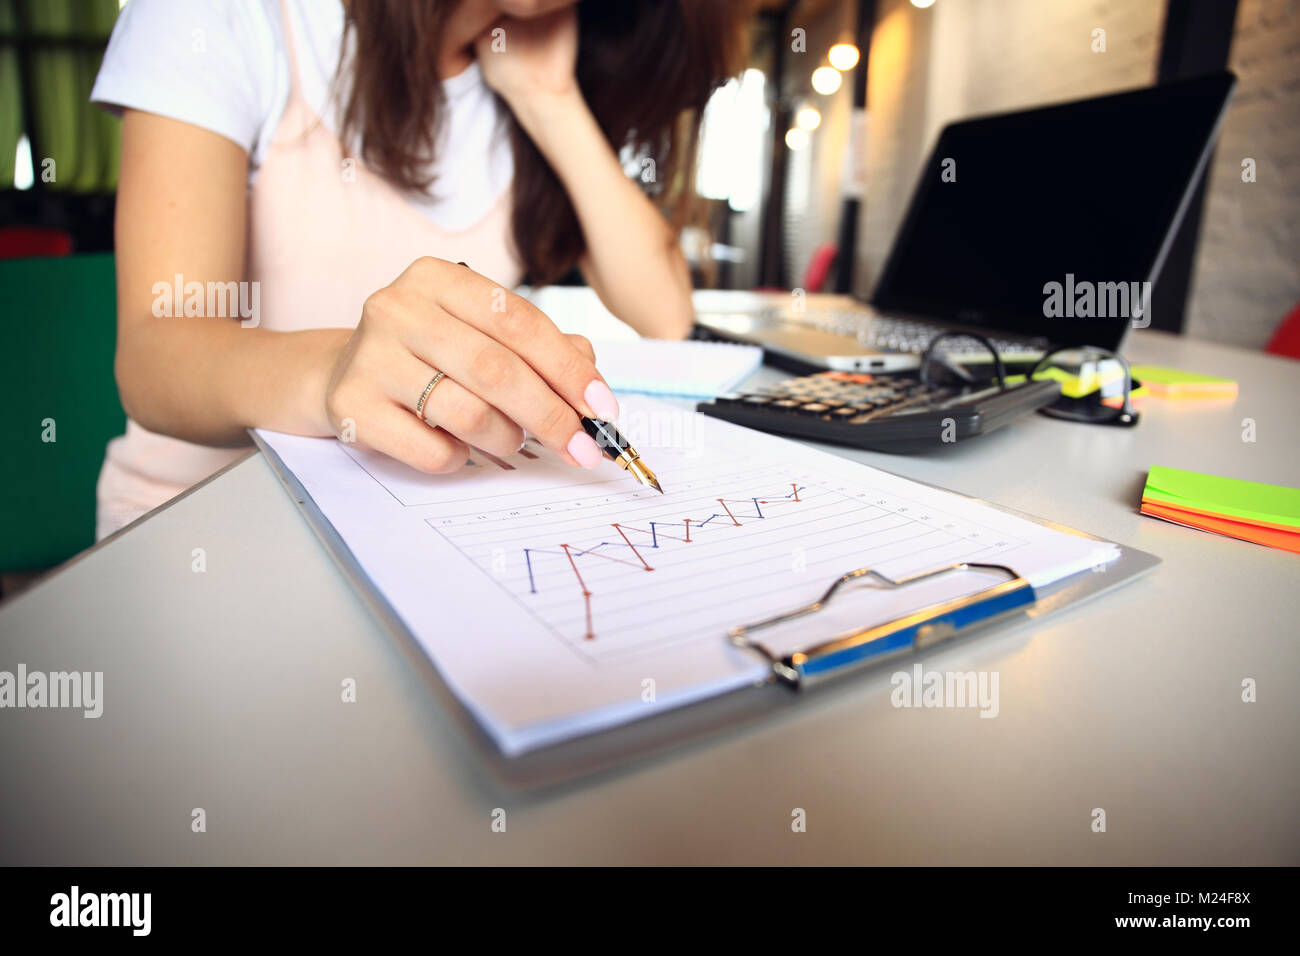 Close-up of female hand pointing at business document while explaining chart. - Stock Image